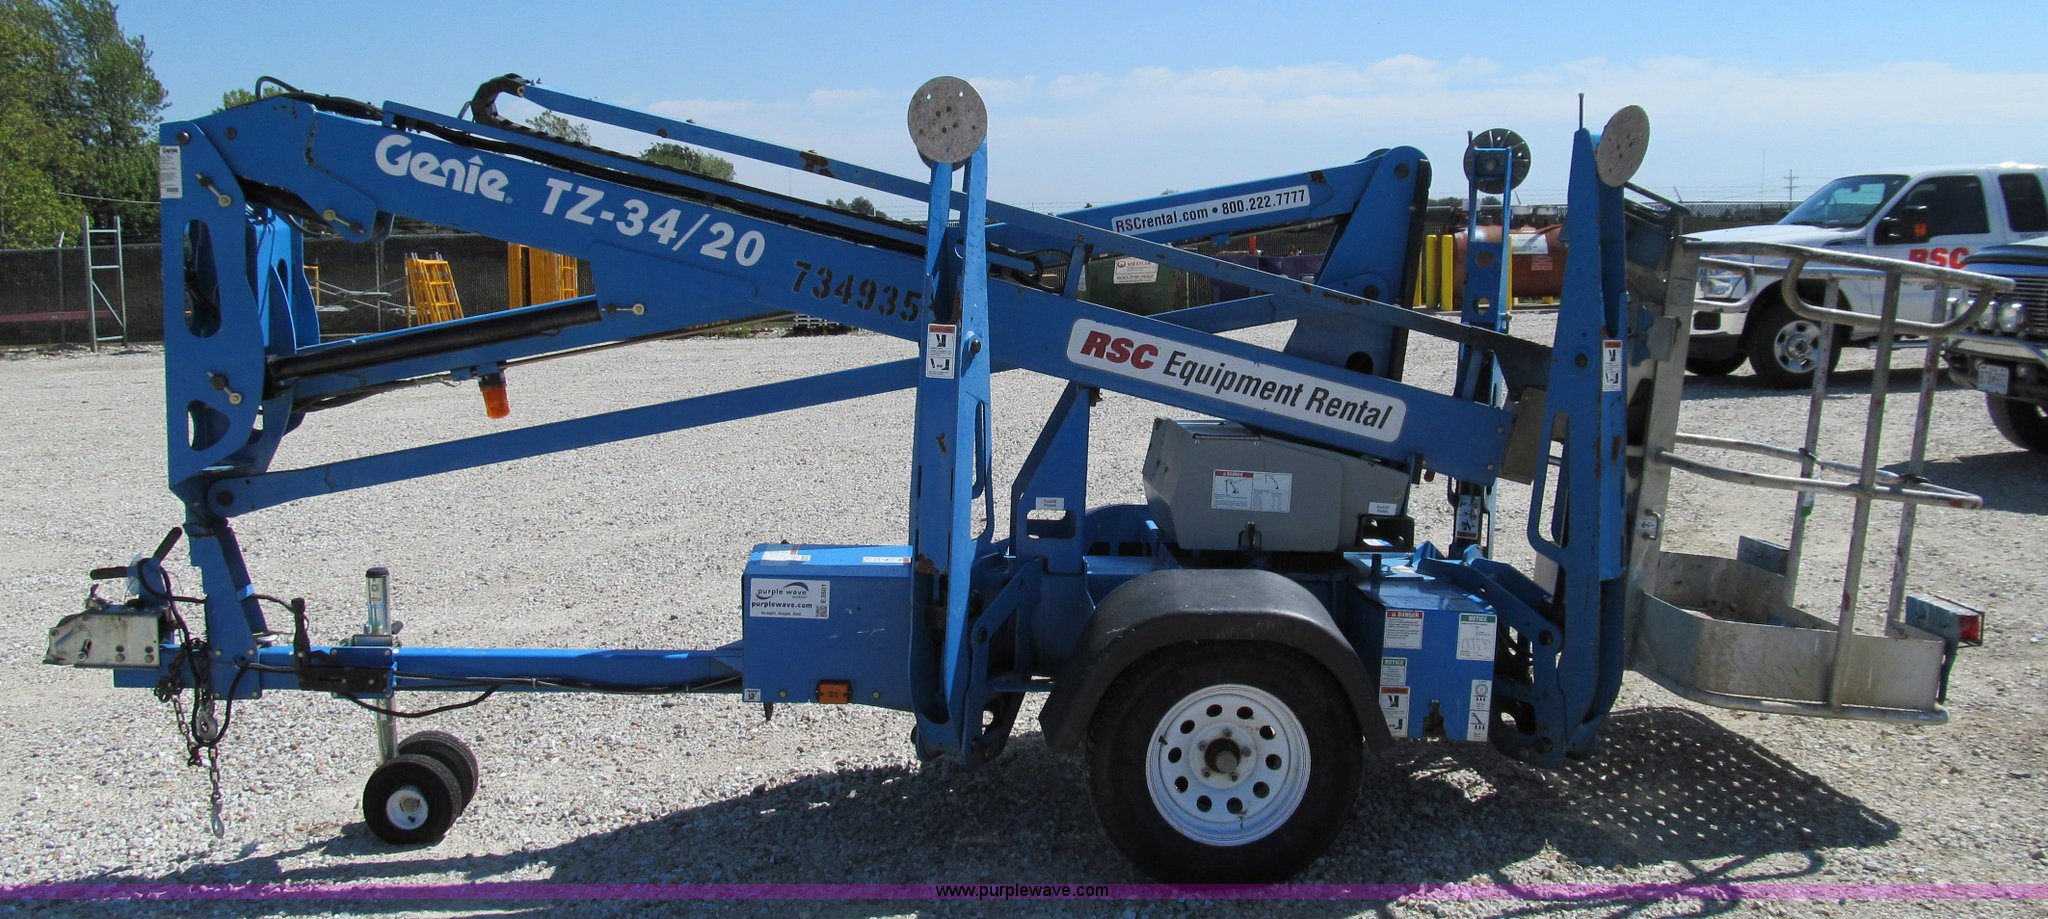 E3501A 2008 genie tz 34 20 towable boom lift item e3501 sold! t genie tz 34 20 wiring diagram at bayanpartner.co